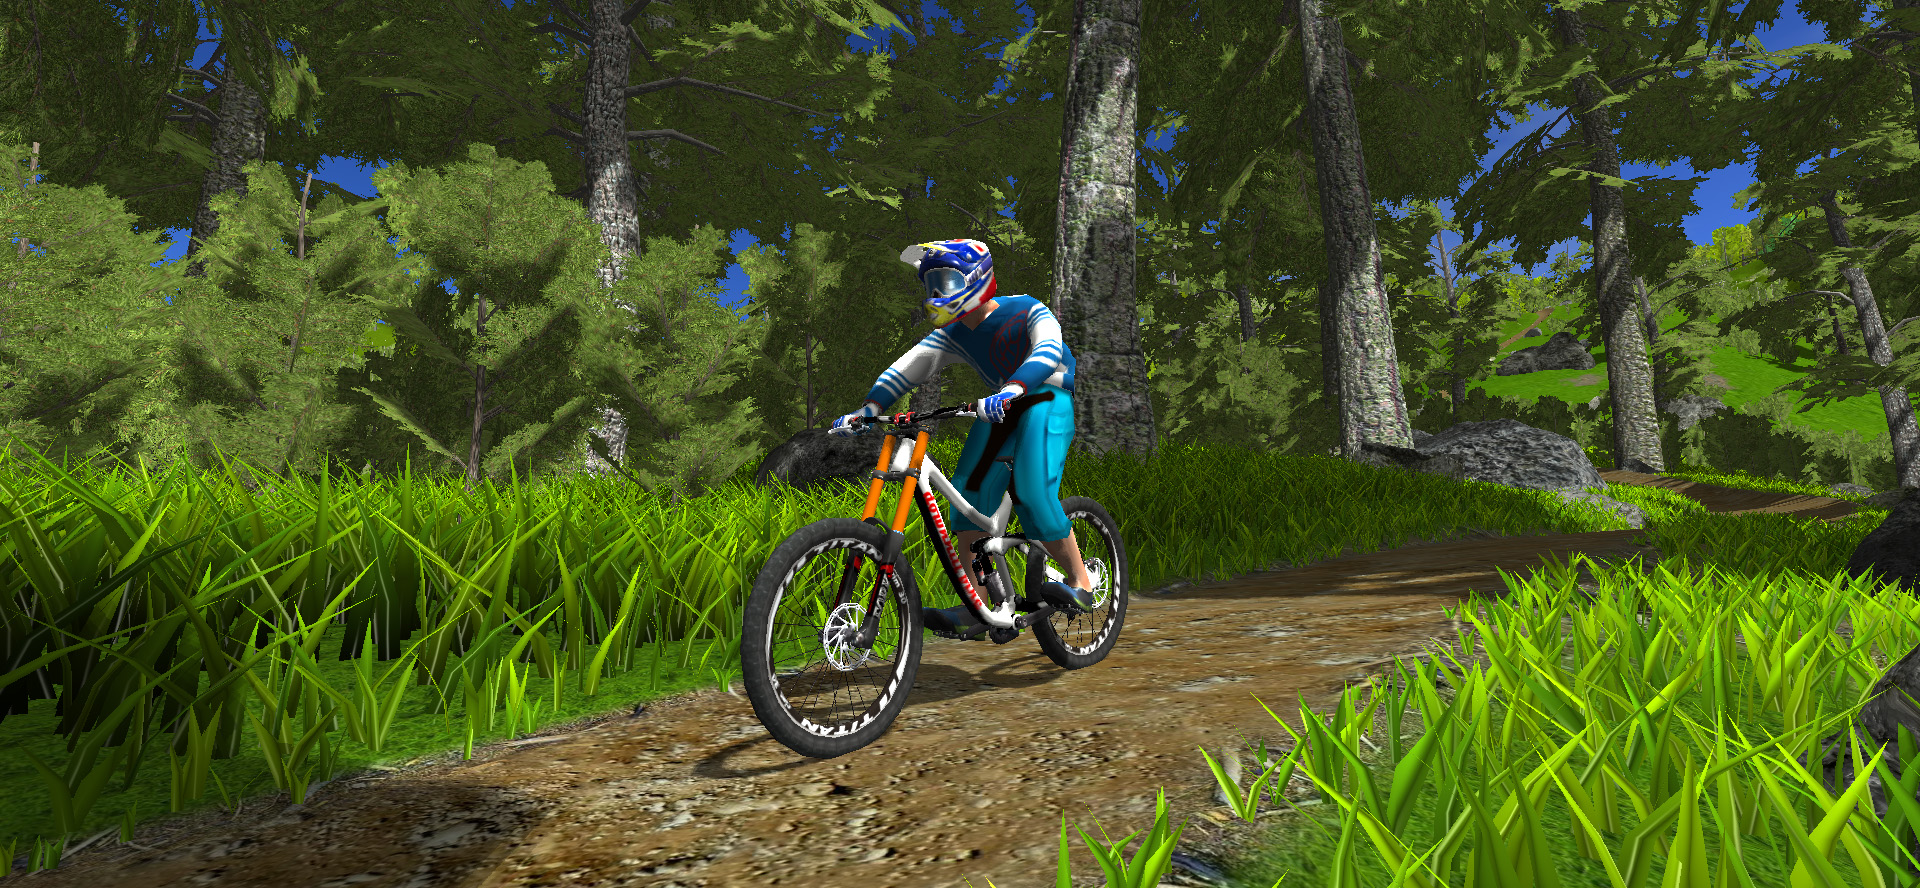 forest riding in bike simulator game